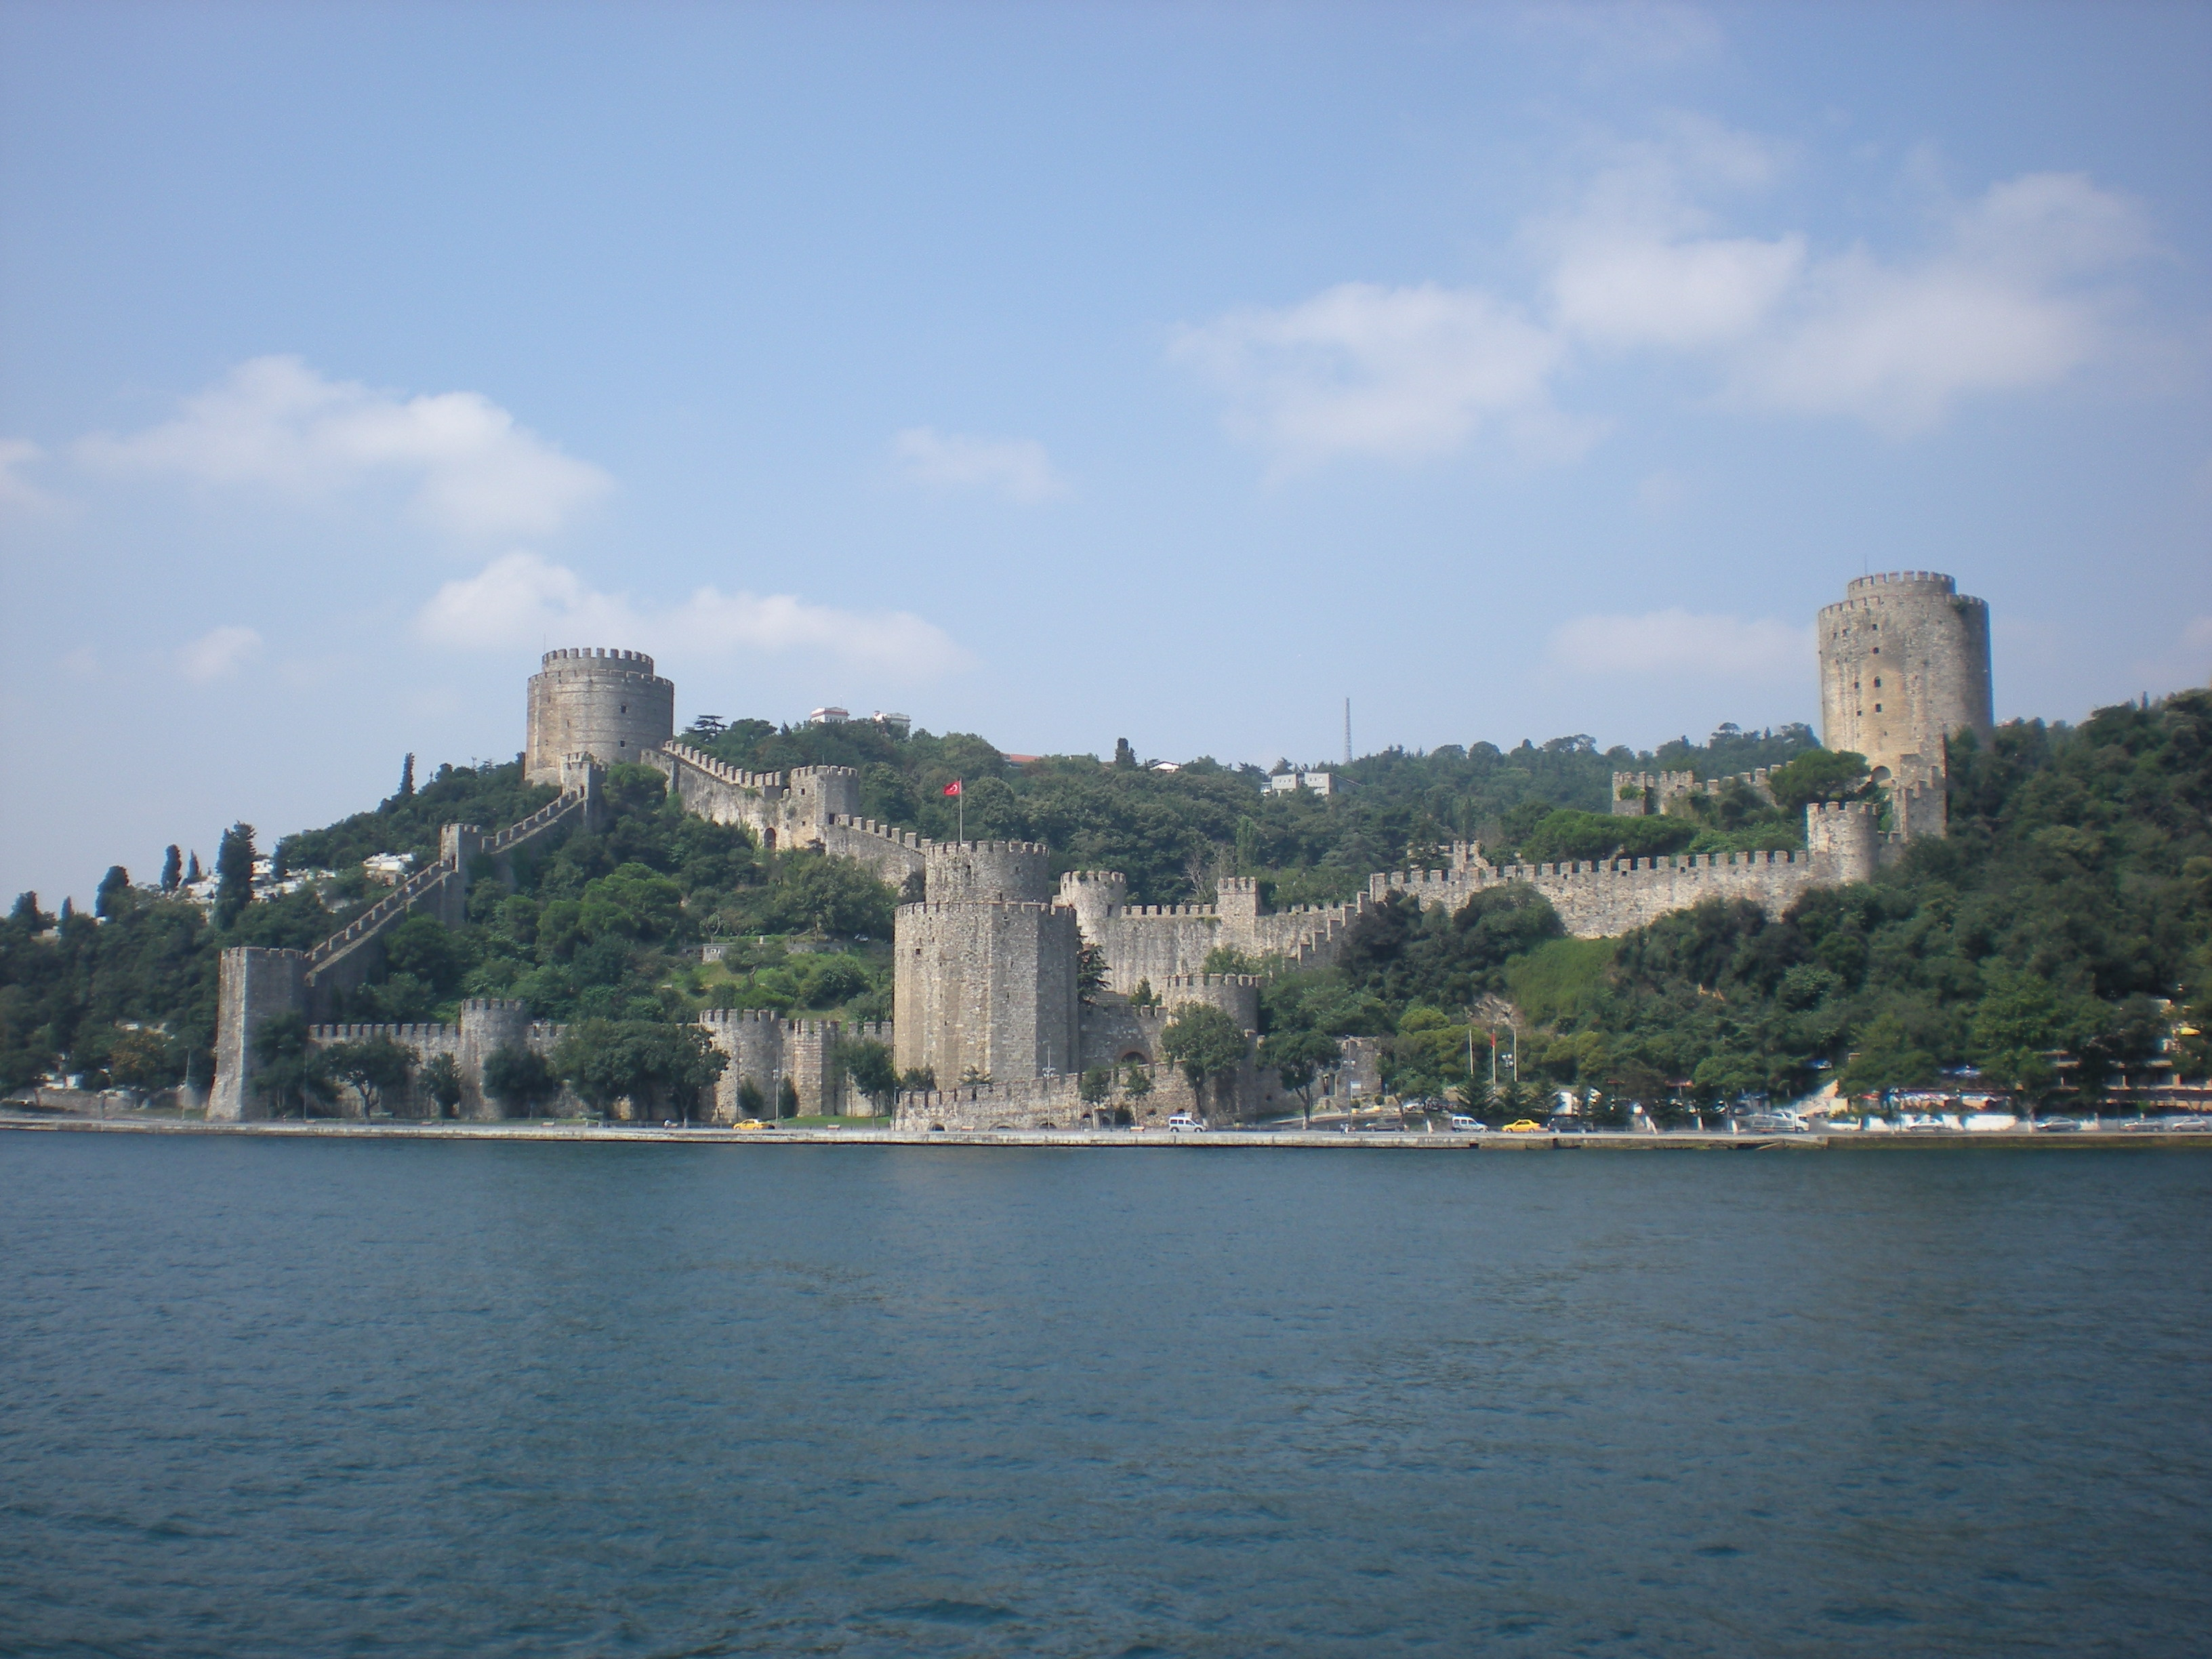 File:Rumeli Hisarı viewed from Bosphorus.JPG - Wikimedia ...